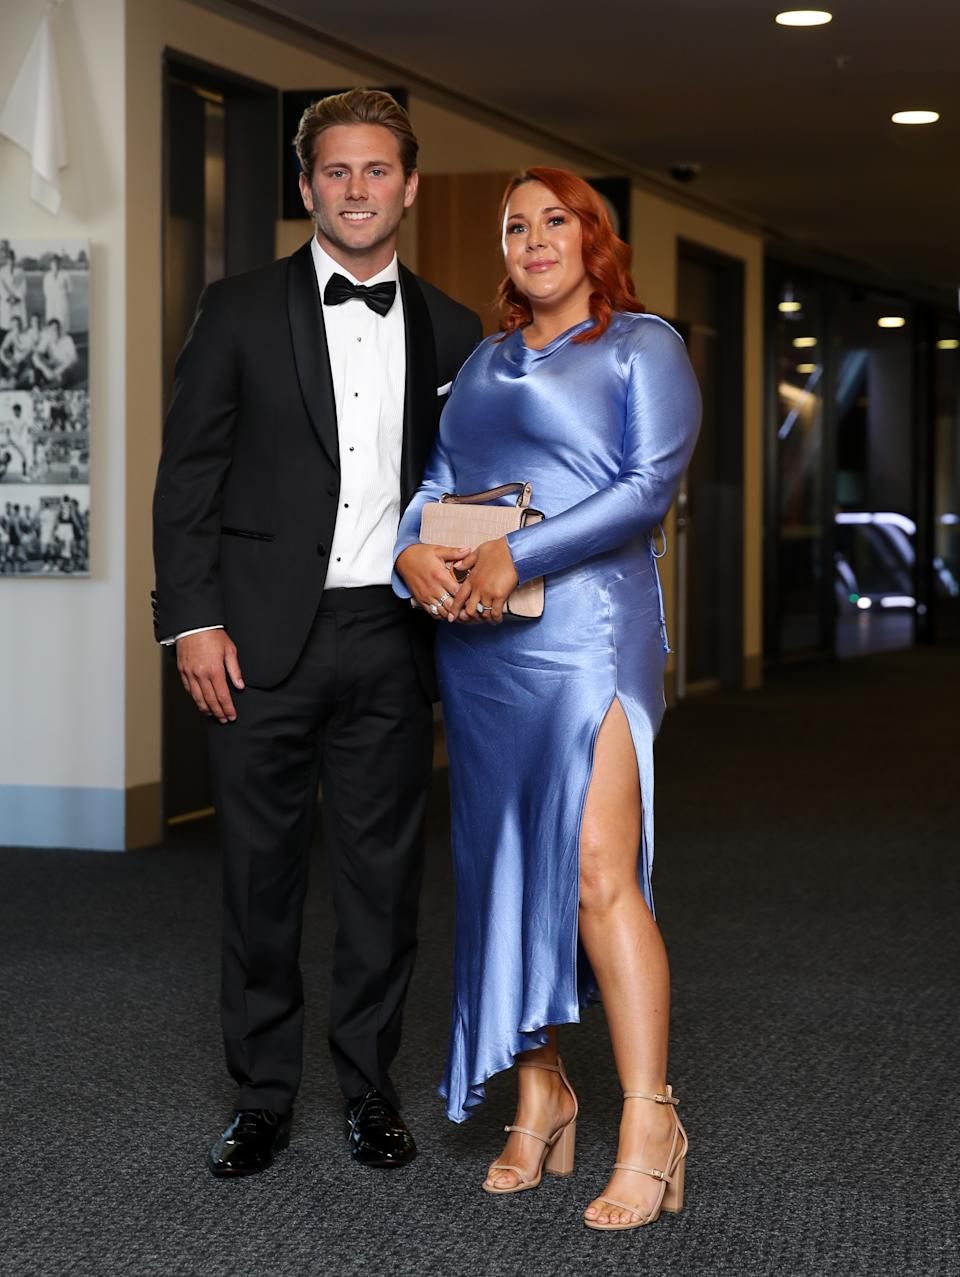 Caleb and Chloe Daniel during the 2020 Brownlow Medal Count at Adelaide Oval on October 18, 2020 in Adelaide, Australia.